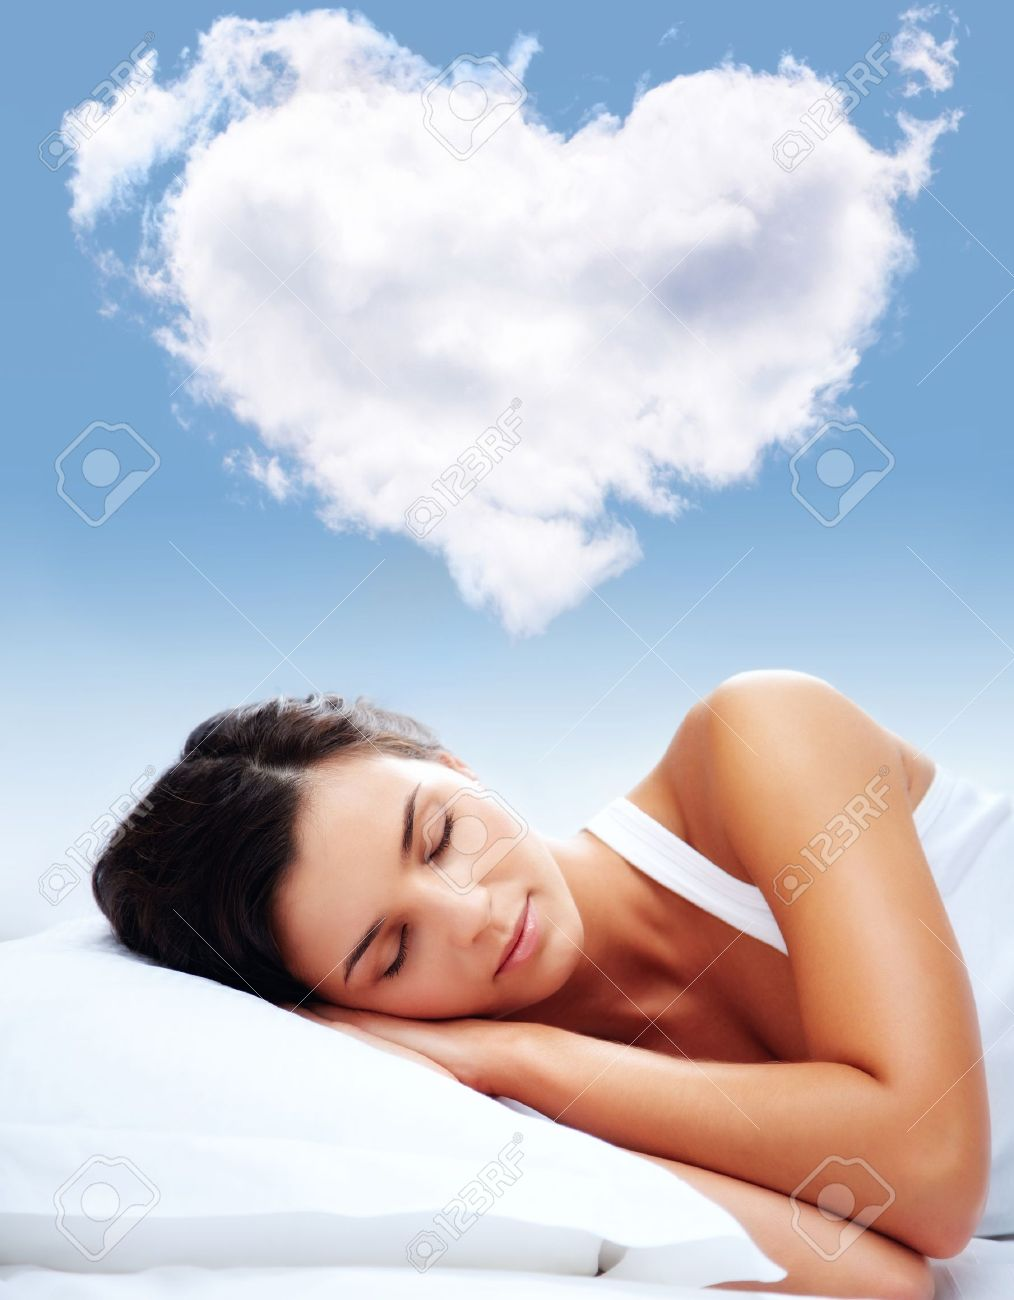 Portrait of a young girl sleeping on a pillow with heartshaped cloud over her Stock Photo - 9262248